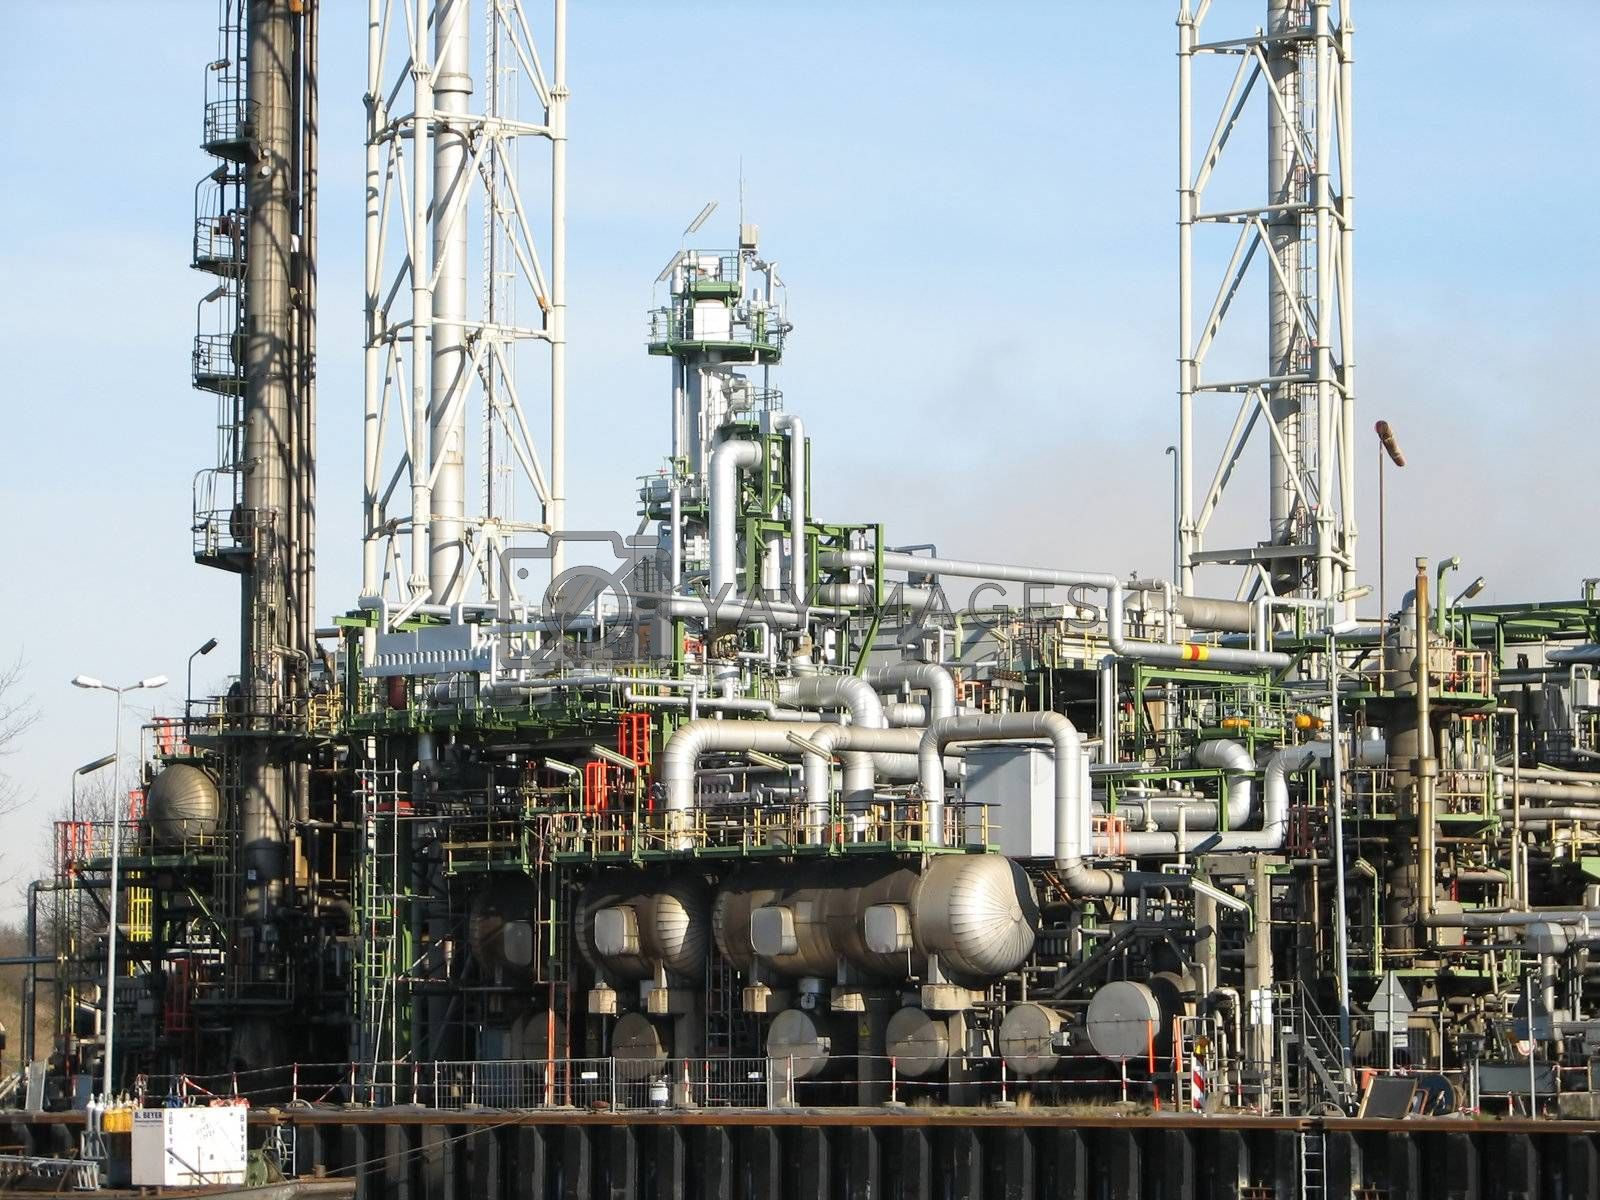 oil refinery, Lingen, Emsland, Germany, 2008